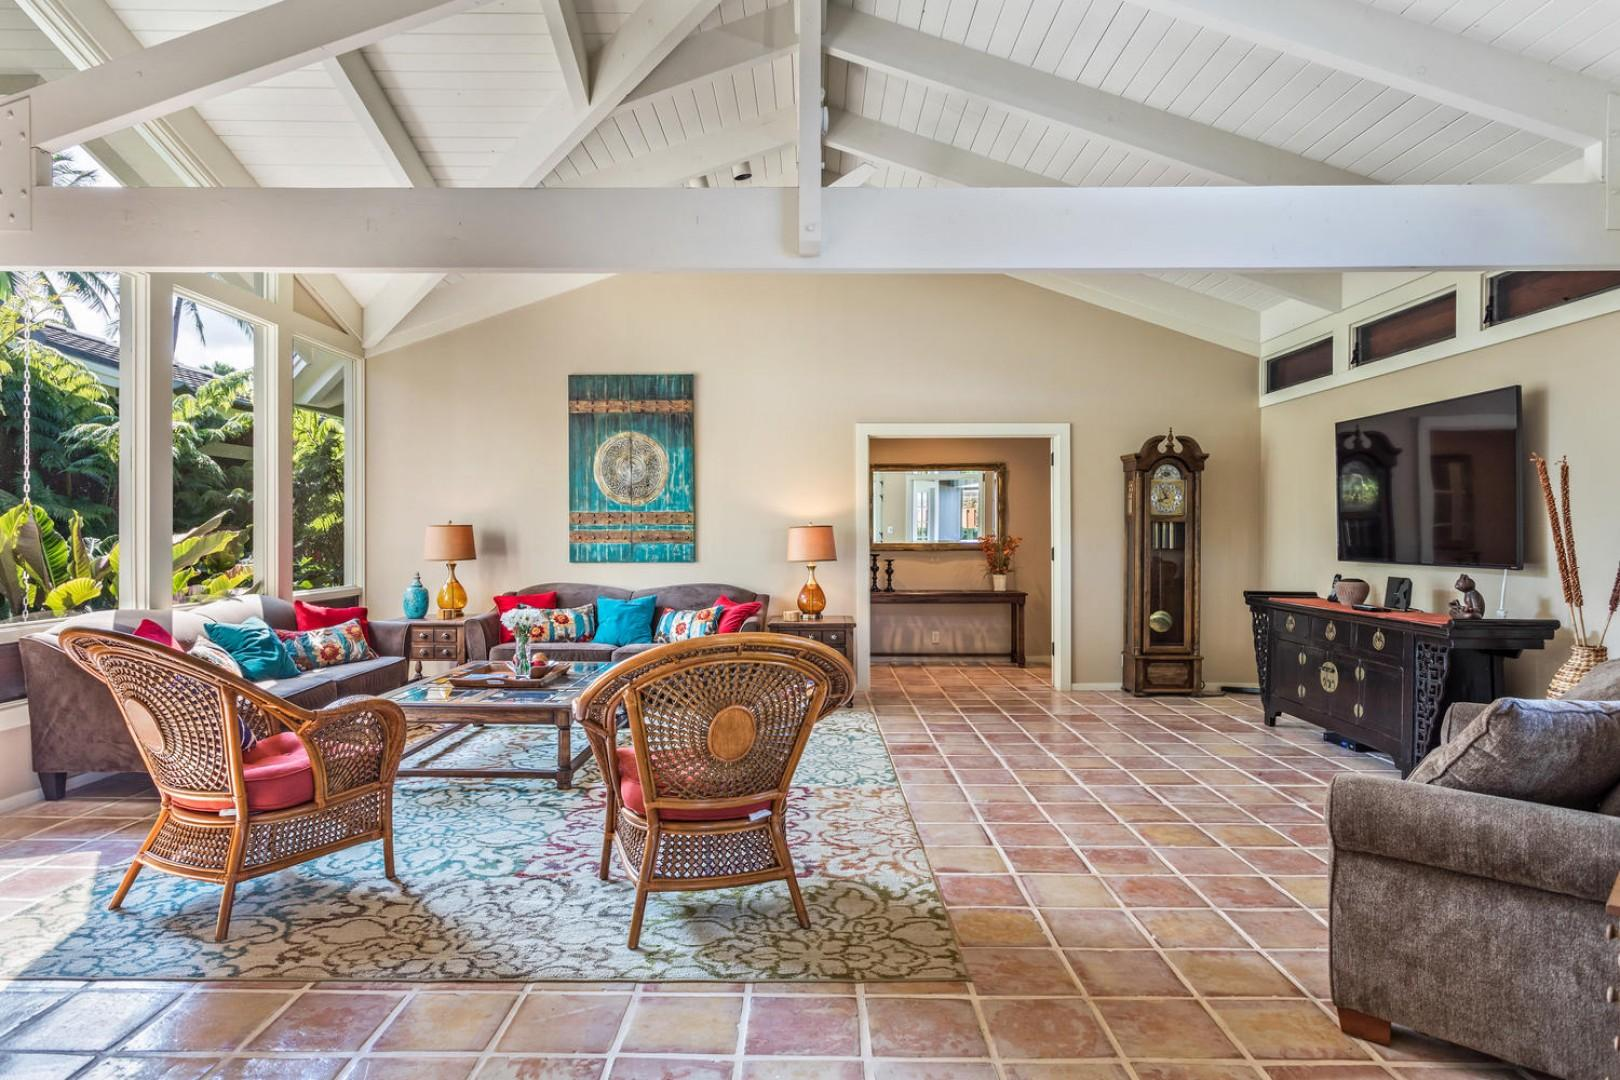 The expansive living room has ample comfortable seating.